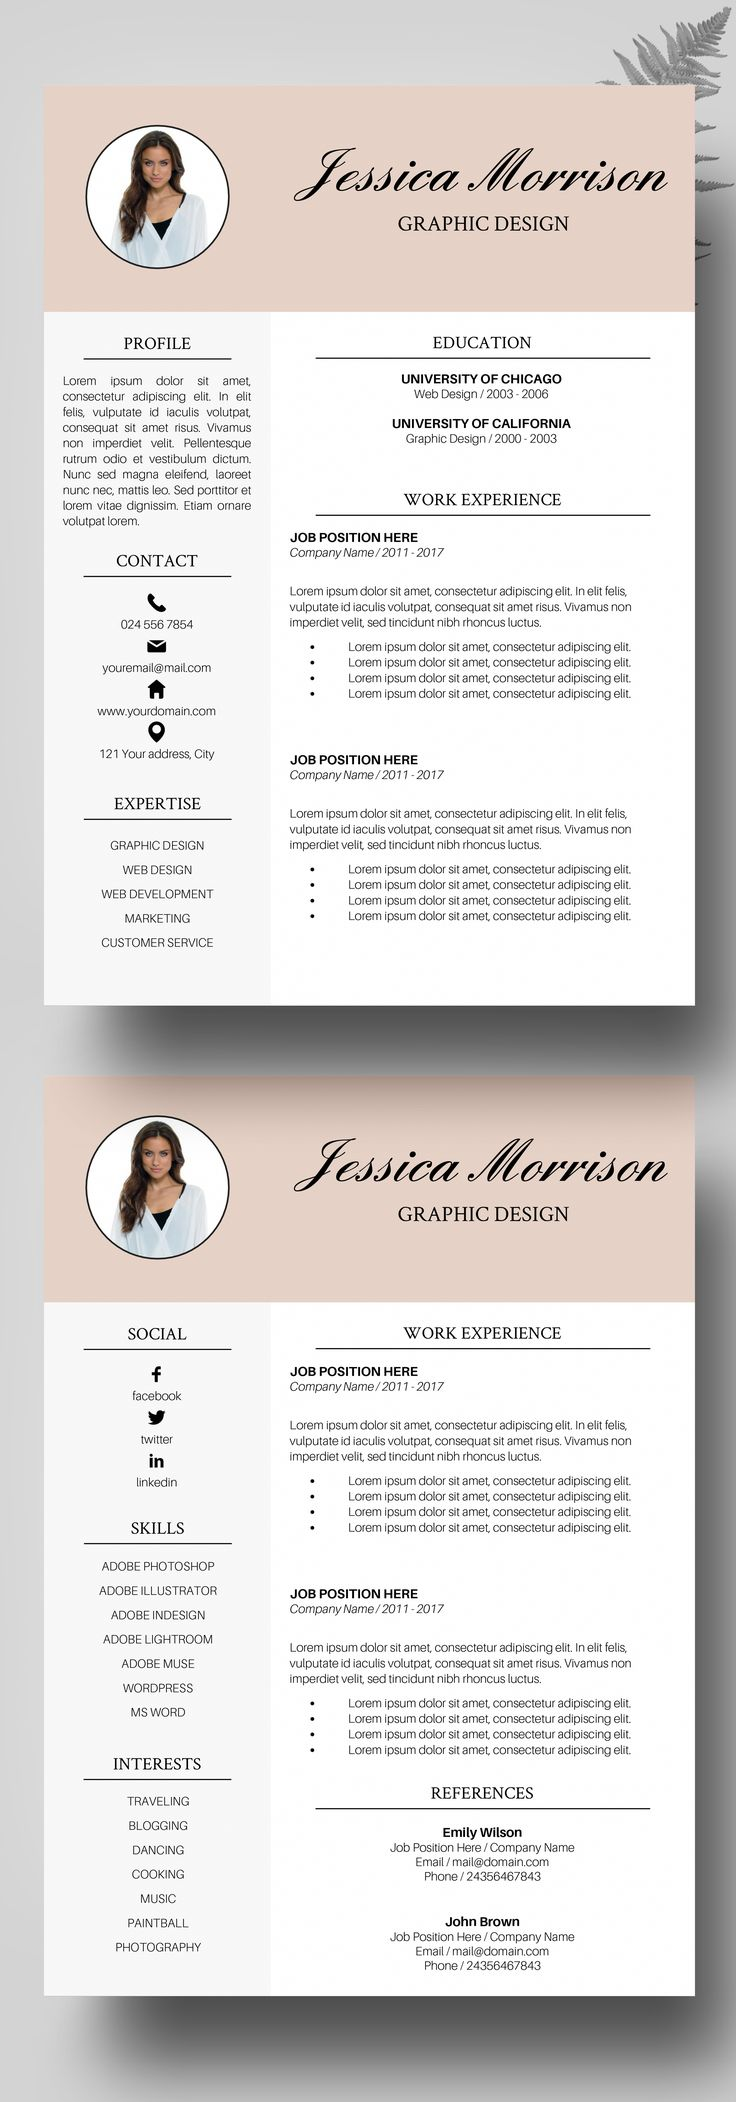 Photo Resume Template Instant Download CV Word Creative Design Service Bundle Professional